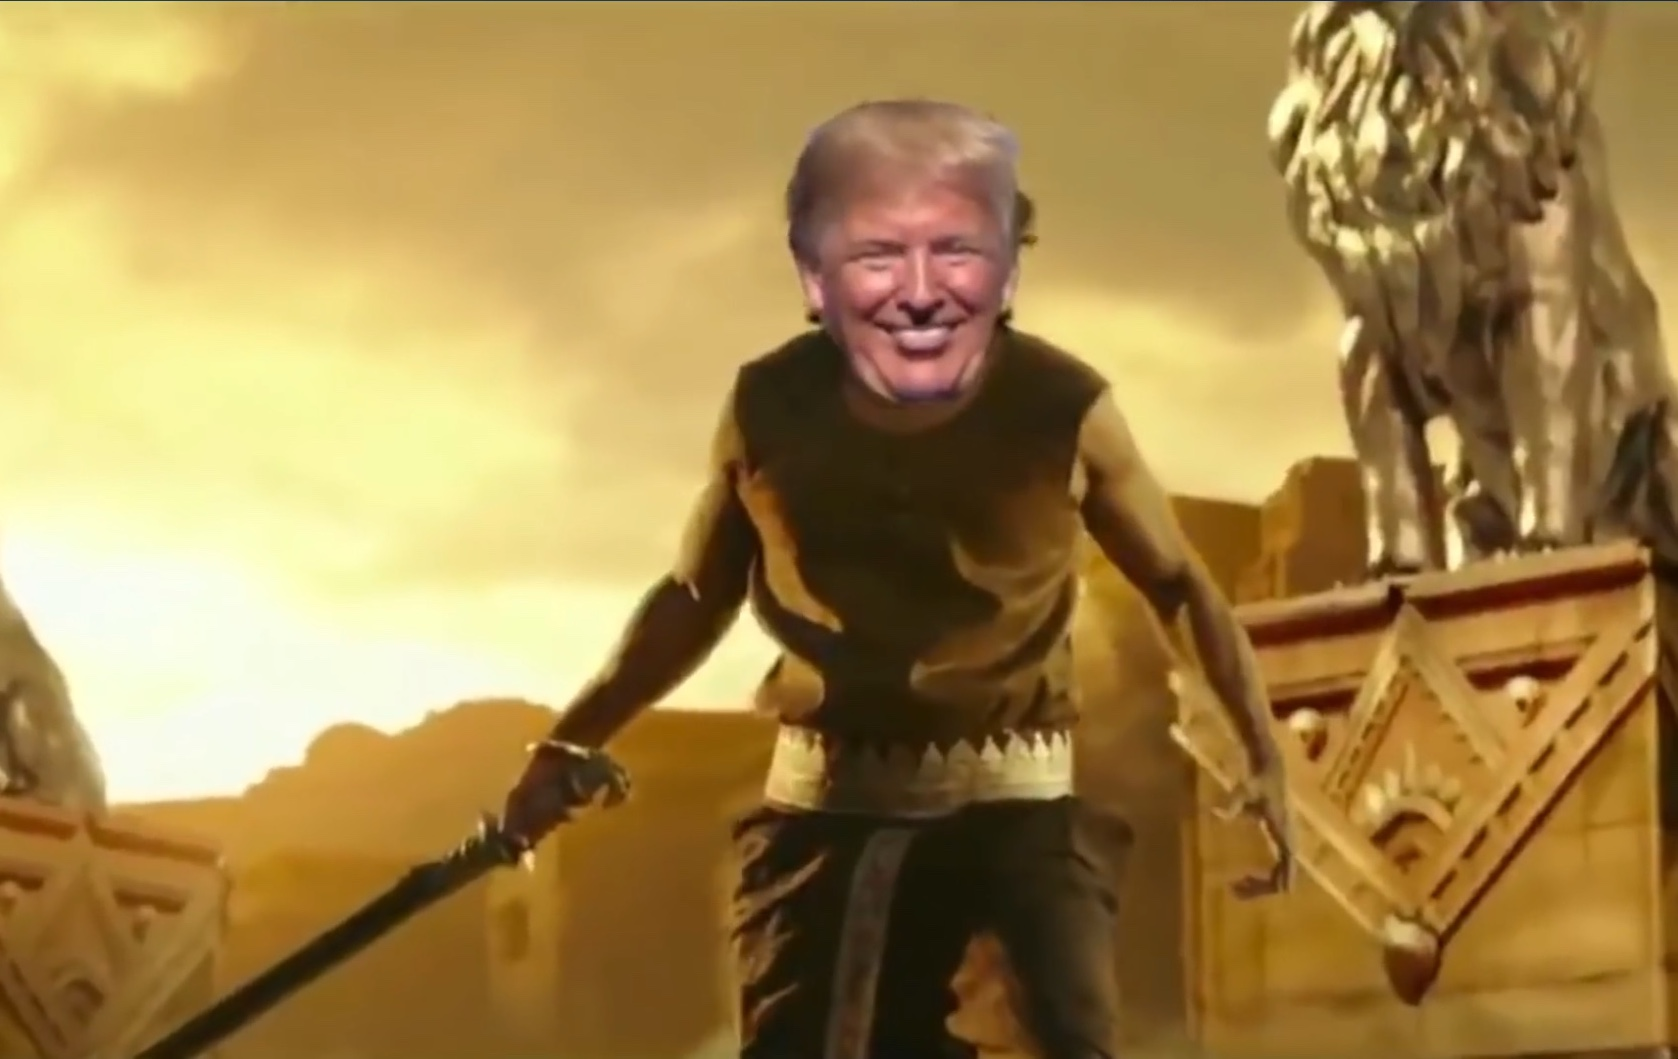 Caption: Trump as Baahubali